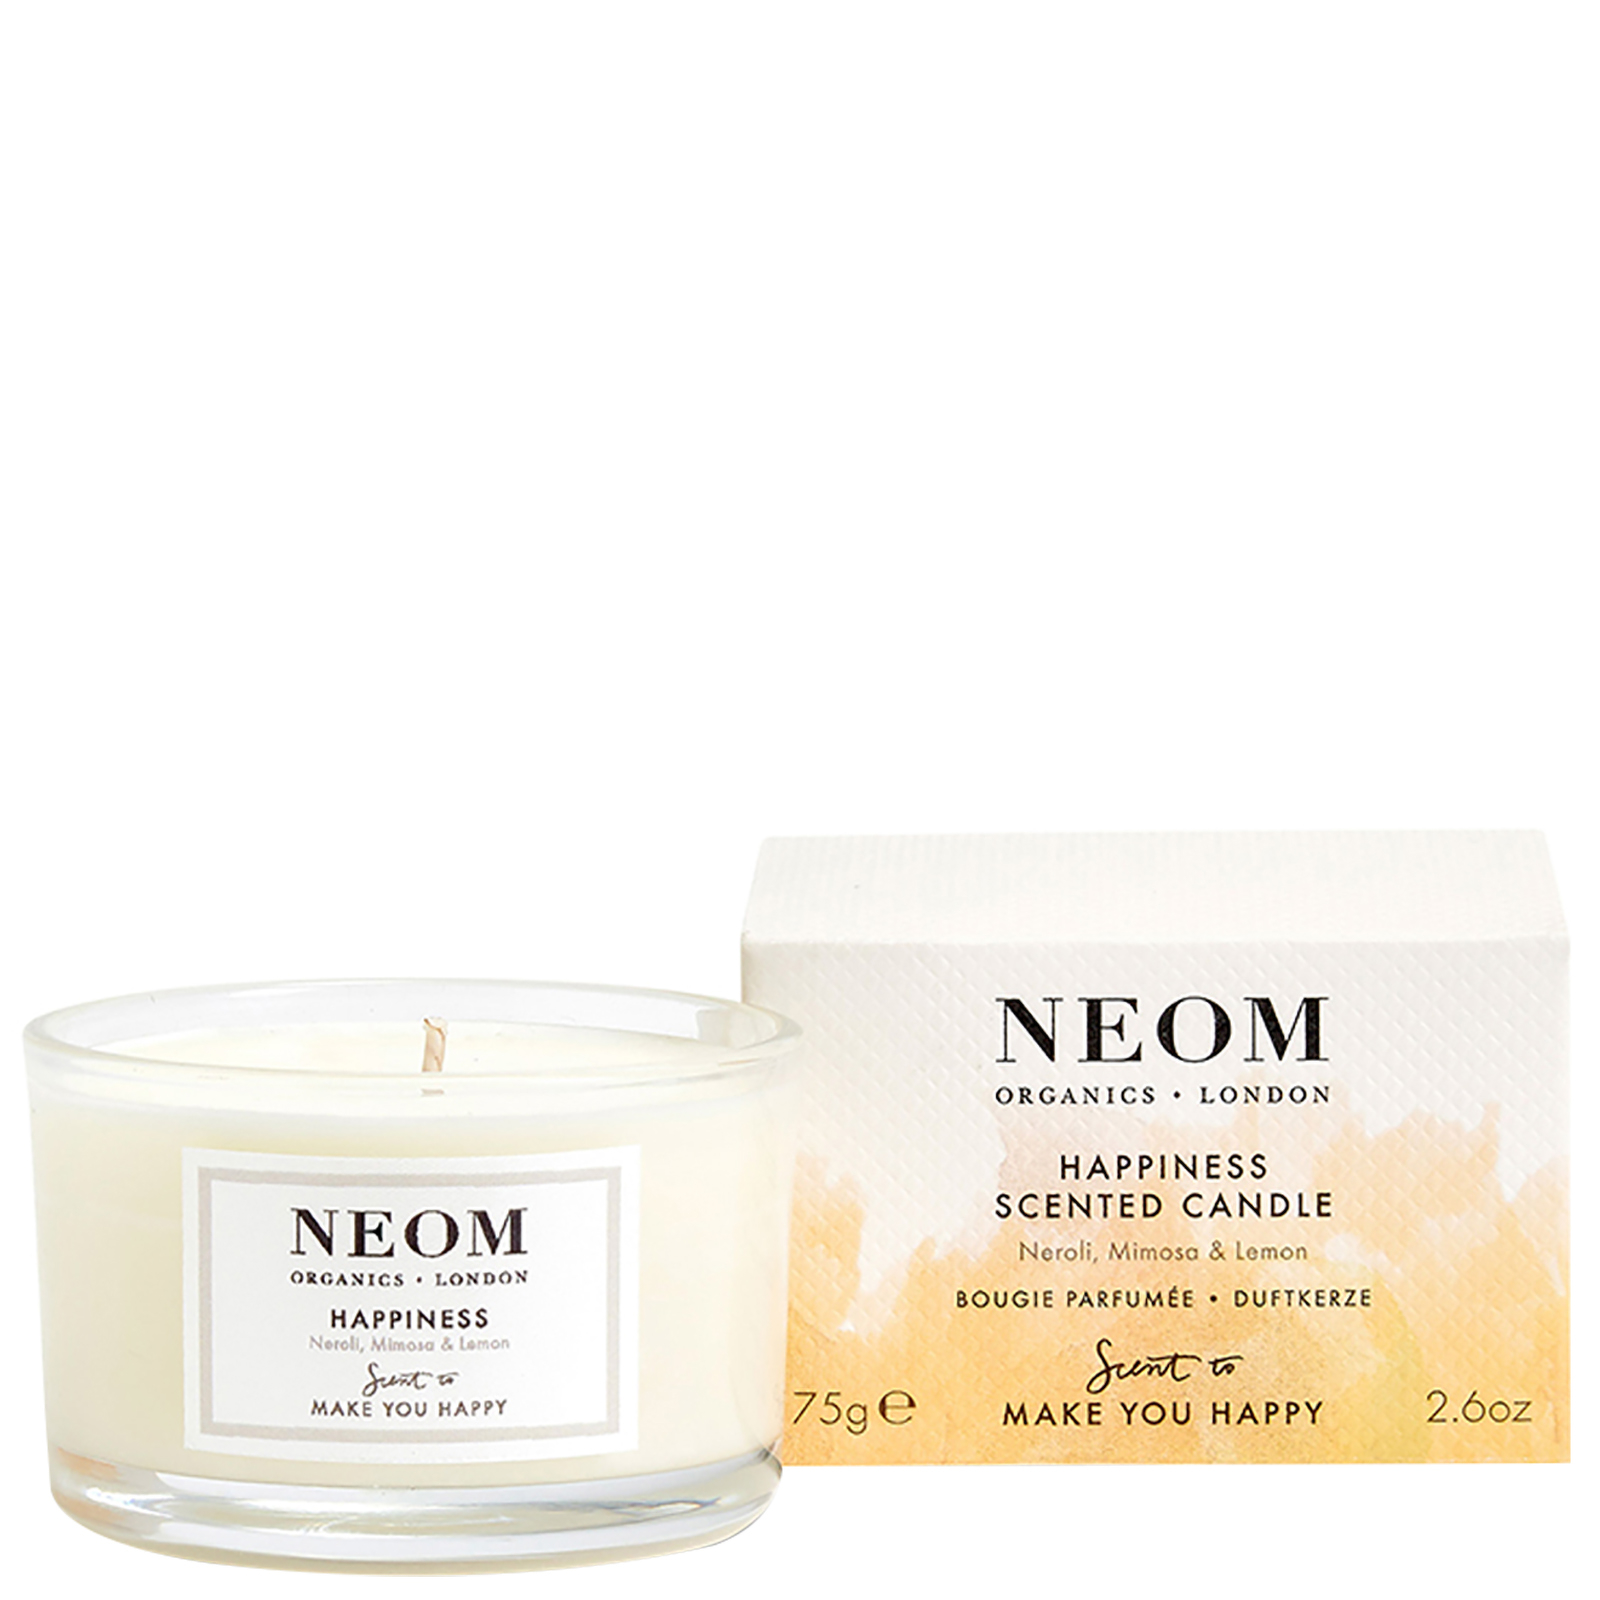 Neom Organics London Scent To Make You Happy Happiness Scented Candle (Travel) 75g